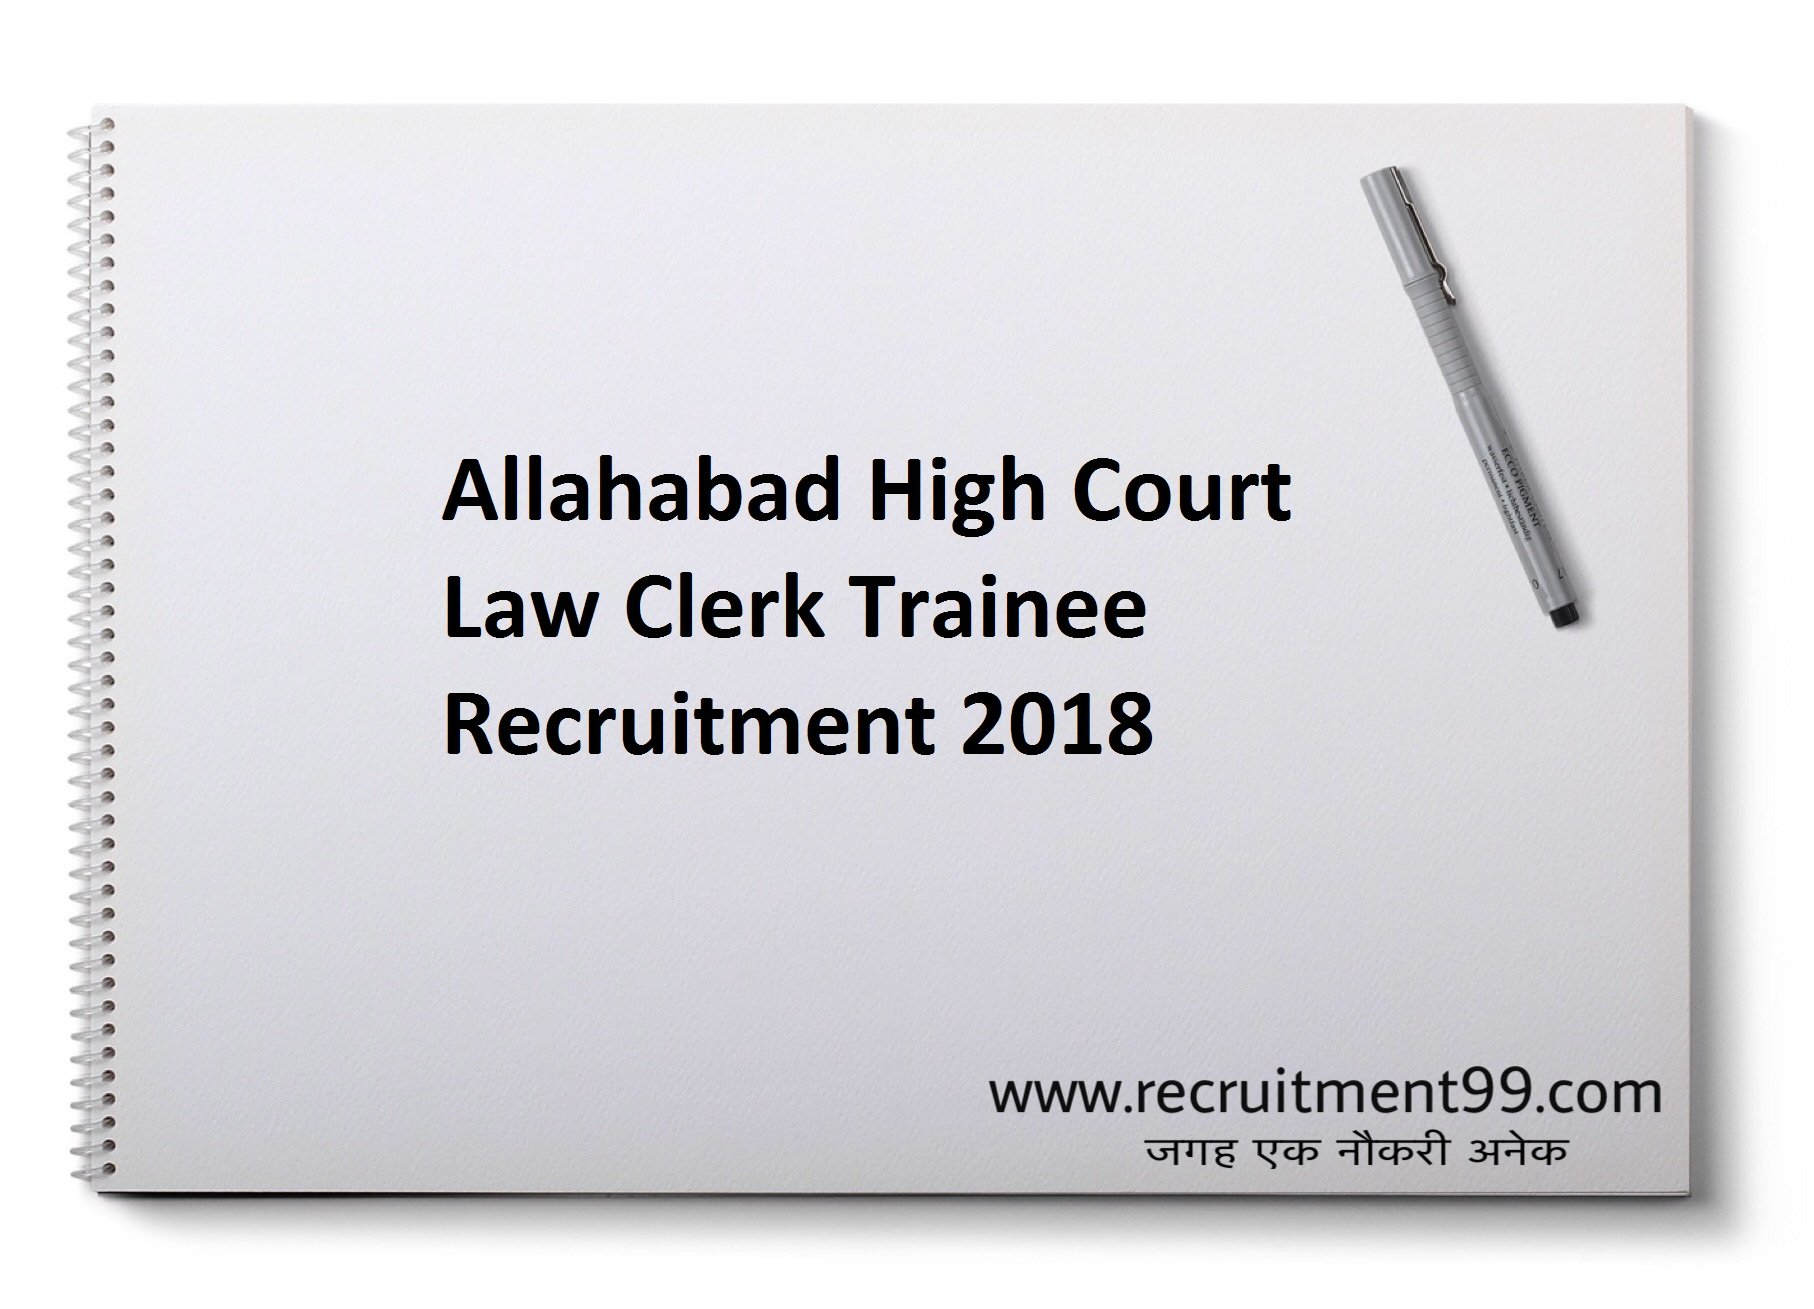 Allahabad high court Law Clerk Trainee Recruitment Admit Card Result 2018